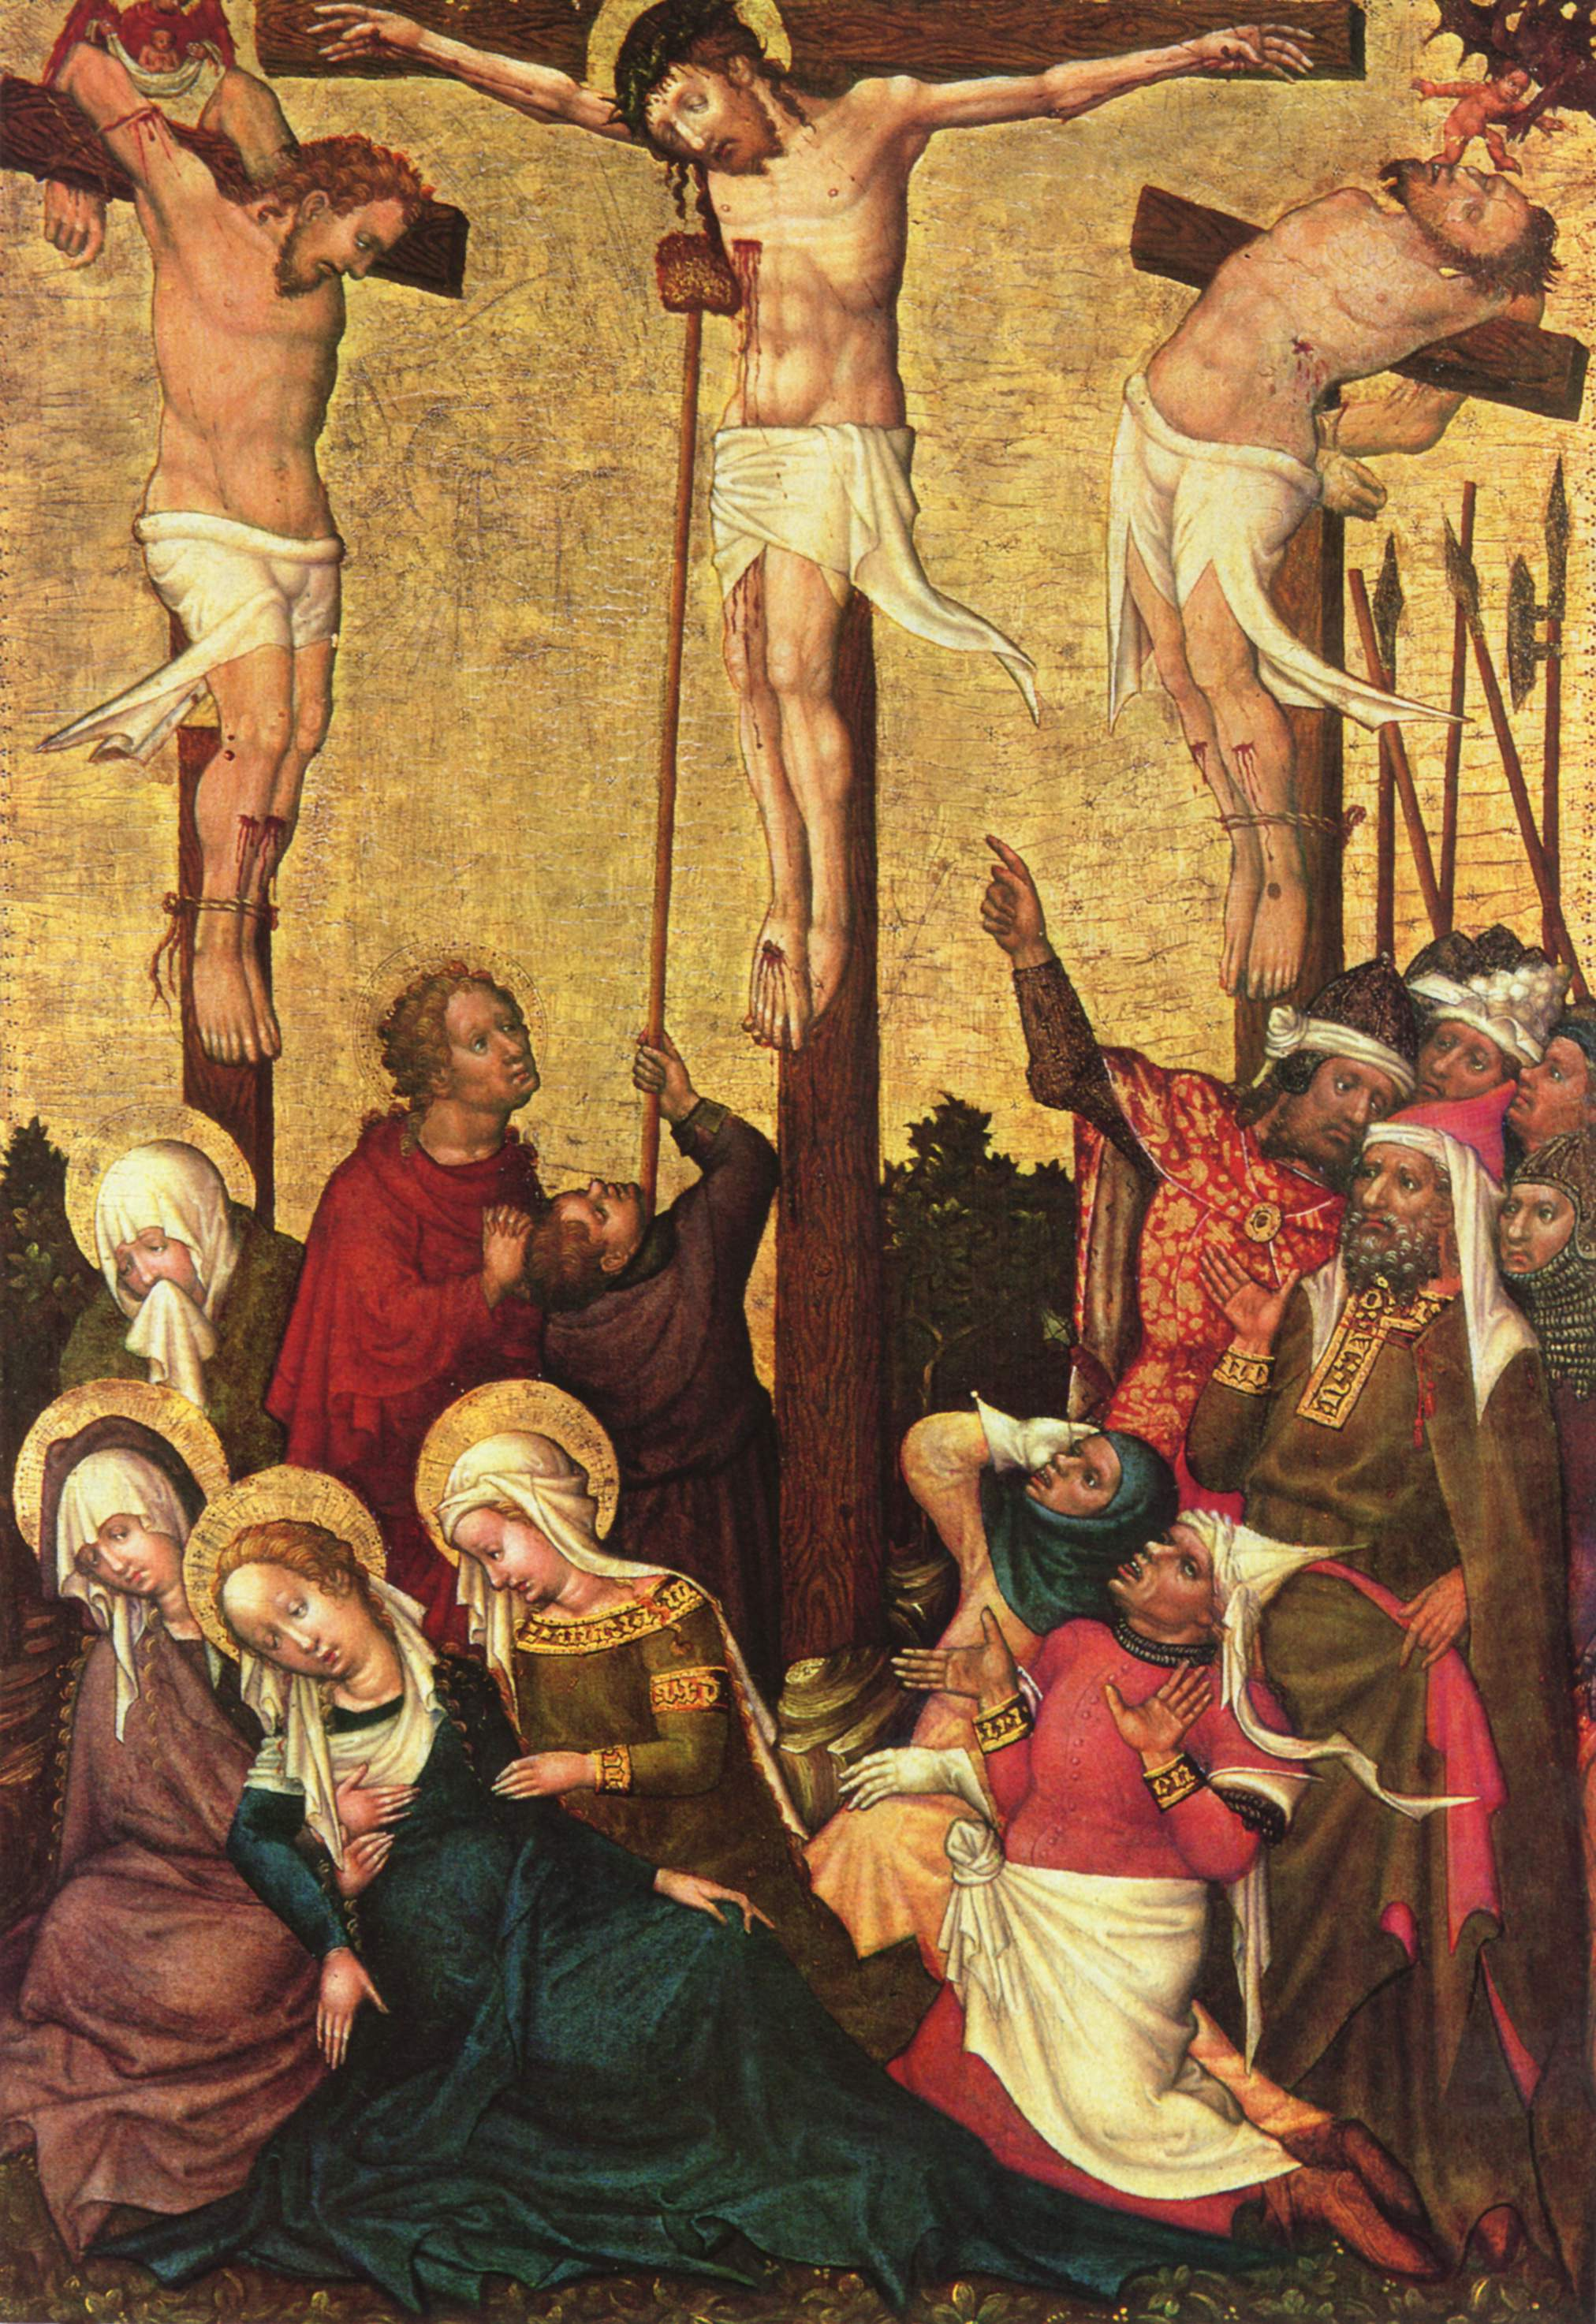 A painting concerning the death of Jesus on a cross between two criminals. The painting is available on wikipedia. I will leave it up to your interpretation to decide if the painting agrees with Luke about what the real tragedy pictured here is.